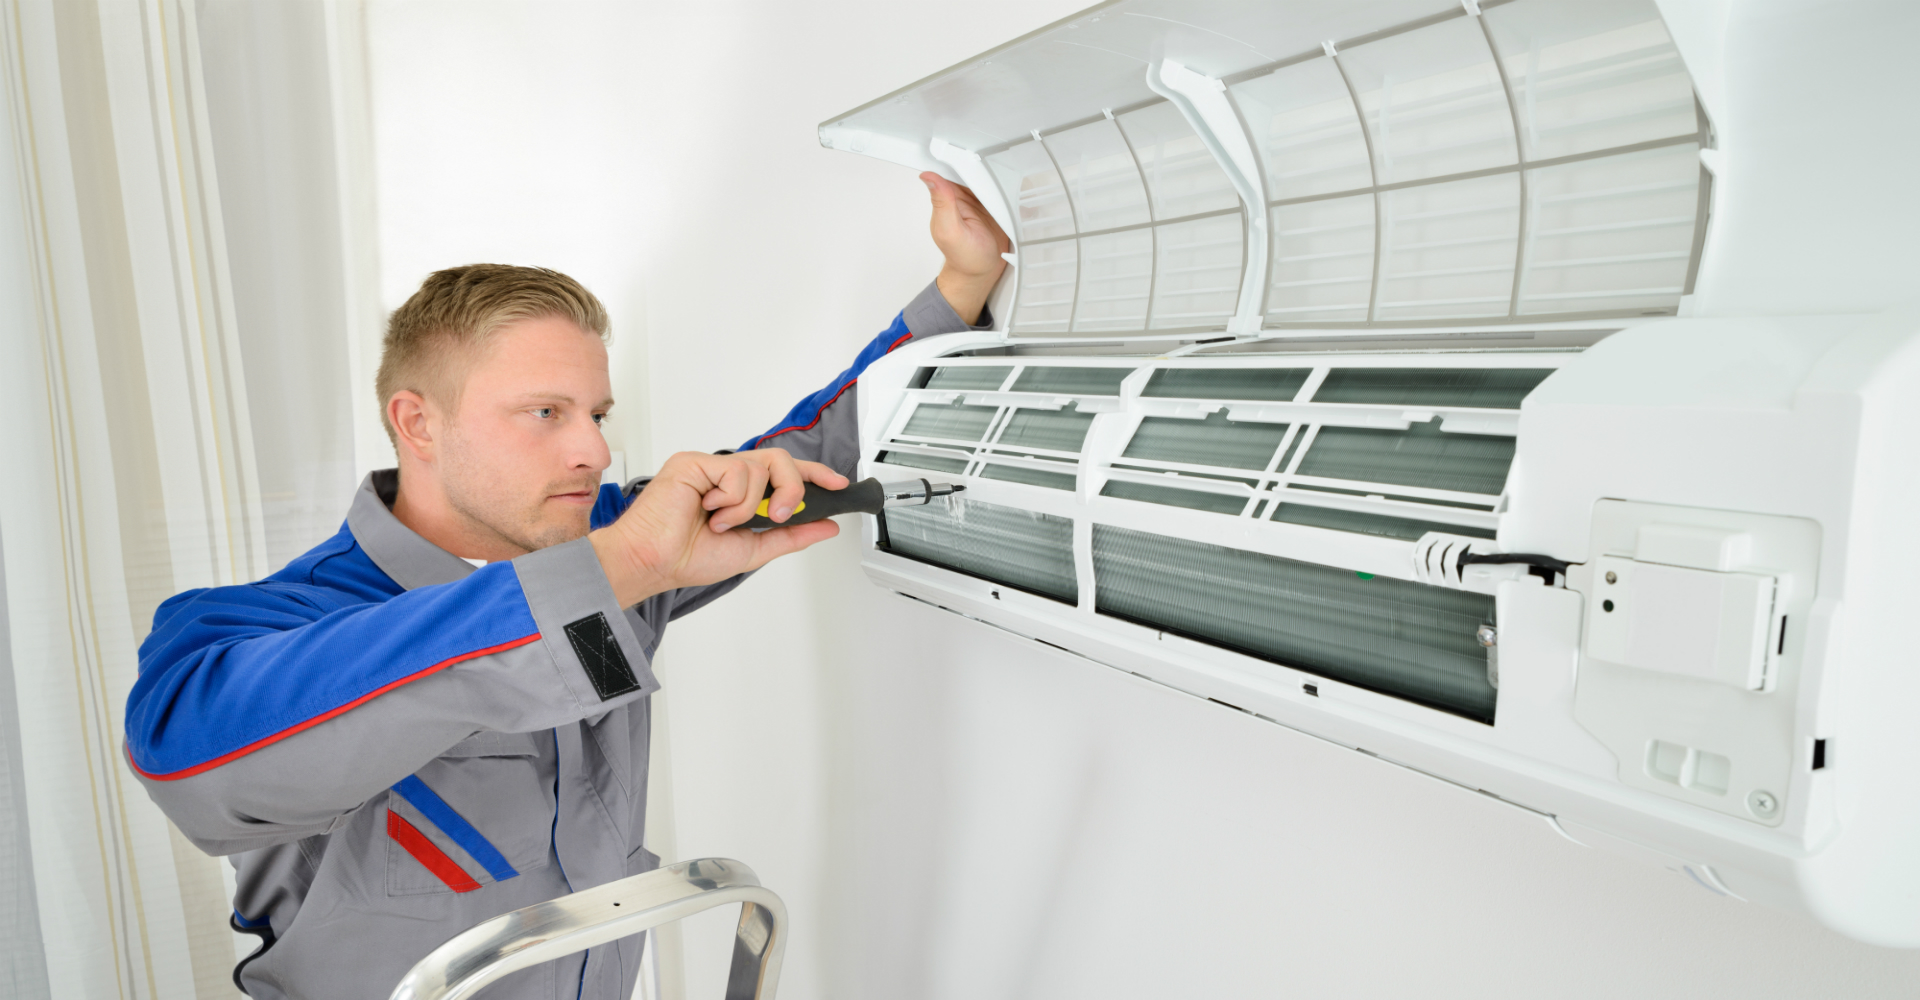 Air Conditioning Installation Tips Understanding Energy Star Ratings for AC Units